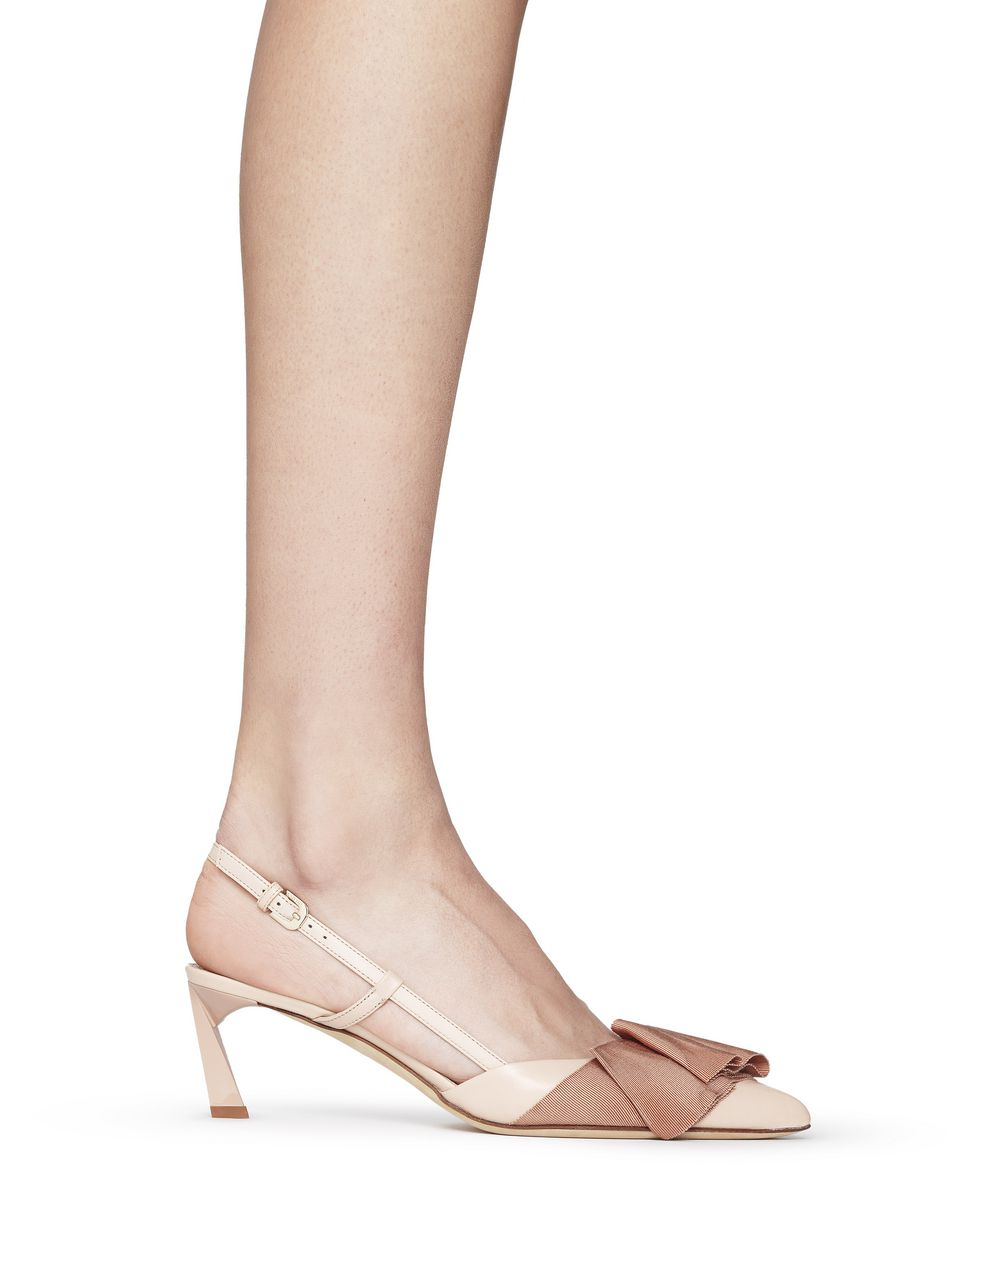 SLINGBACK PUMP WITH BEIGE BOW - Lanvin